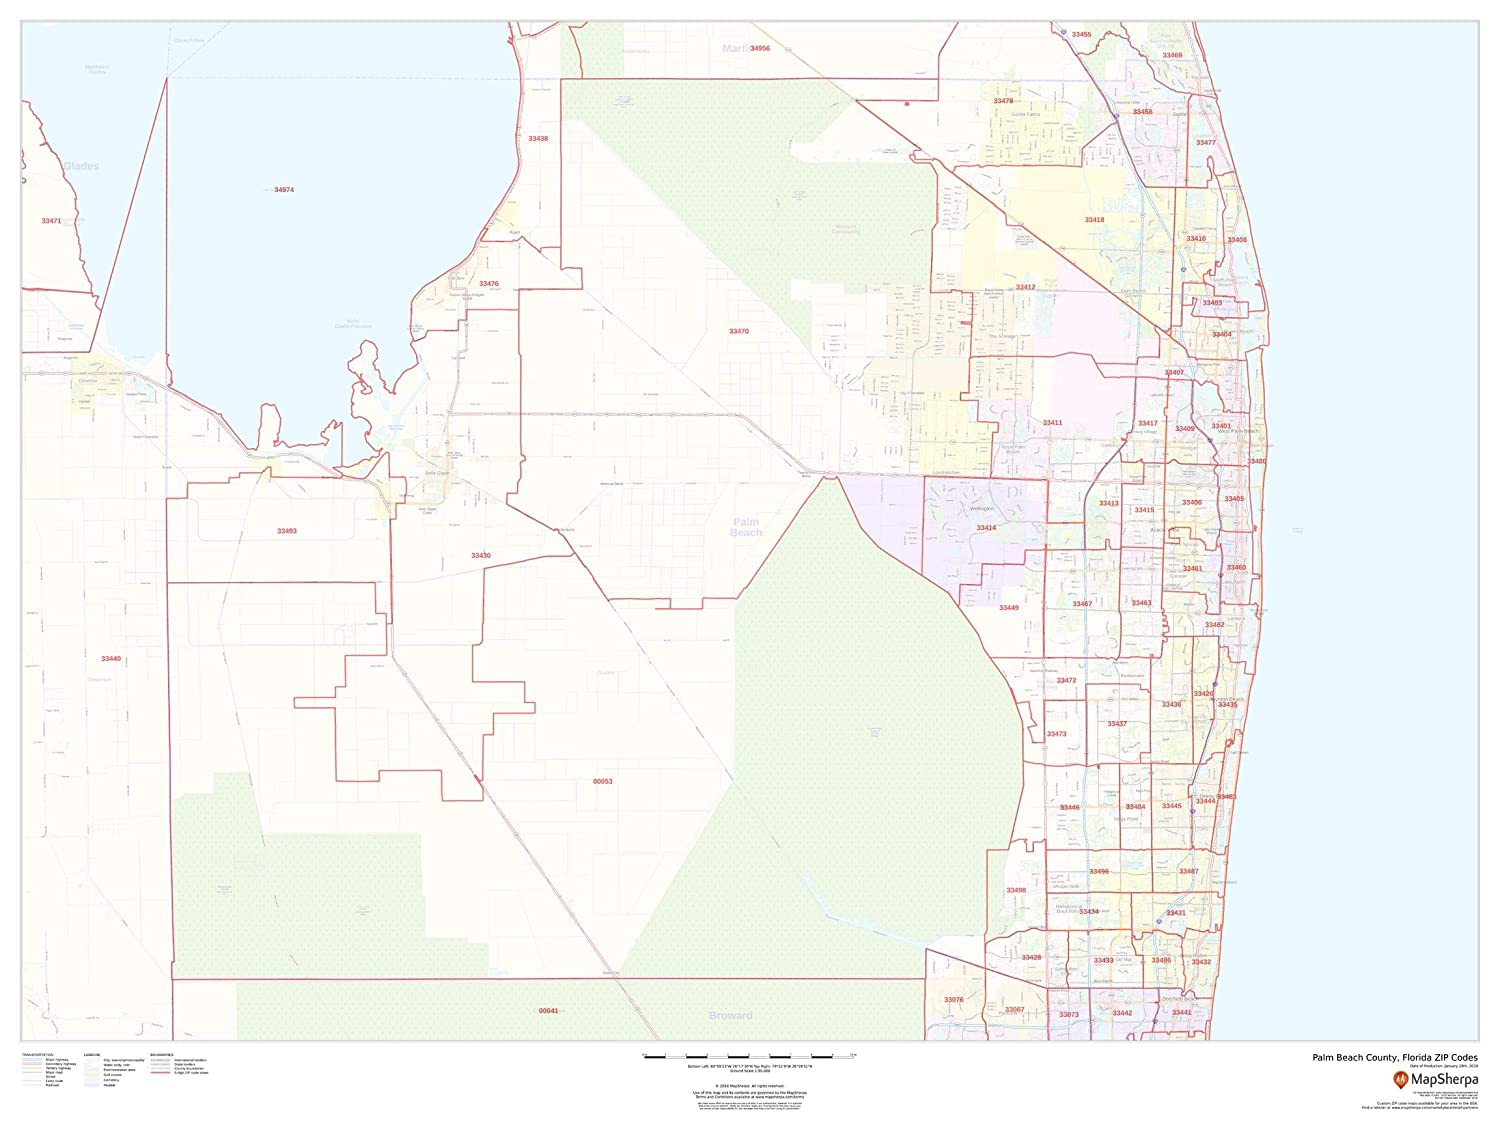 Amazon.com : Palm Beach County, Florida Zip Codes - 48\